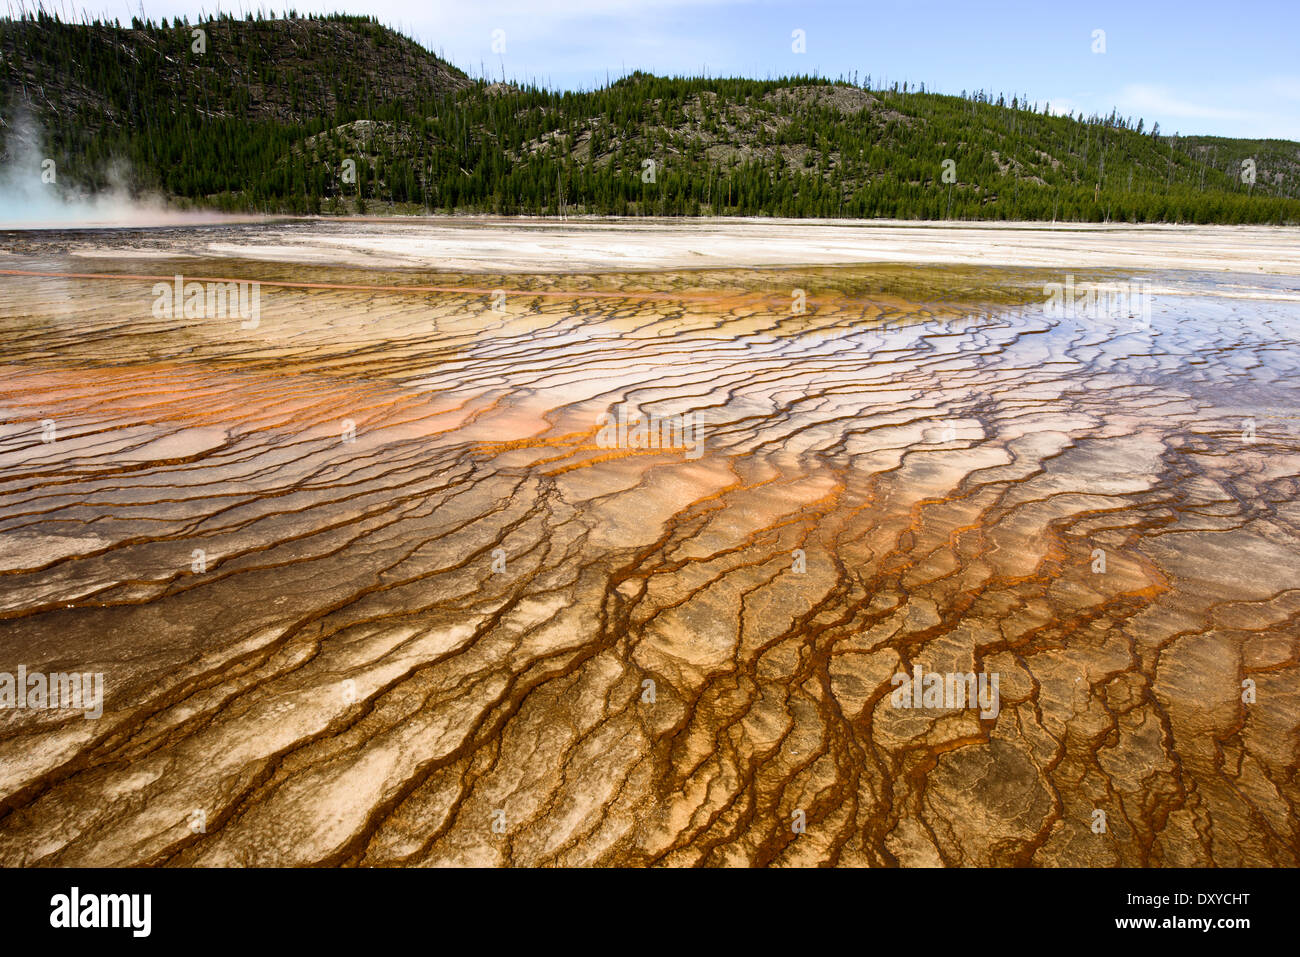 Grand Prismatic Spring, part of the Midway Geyser Basin in Yellowstone National Park. - Stock Image